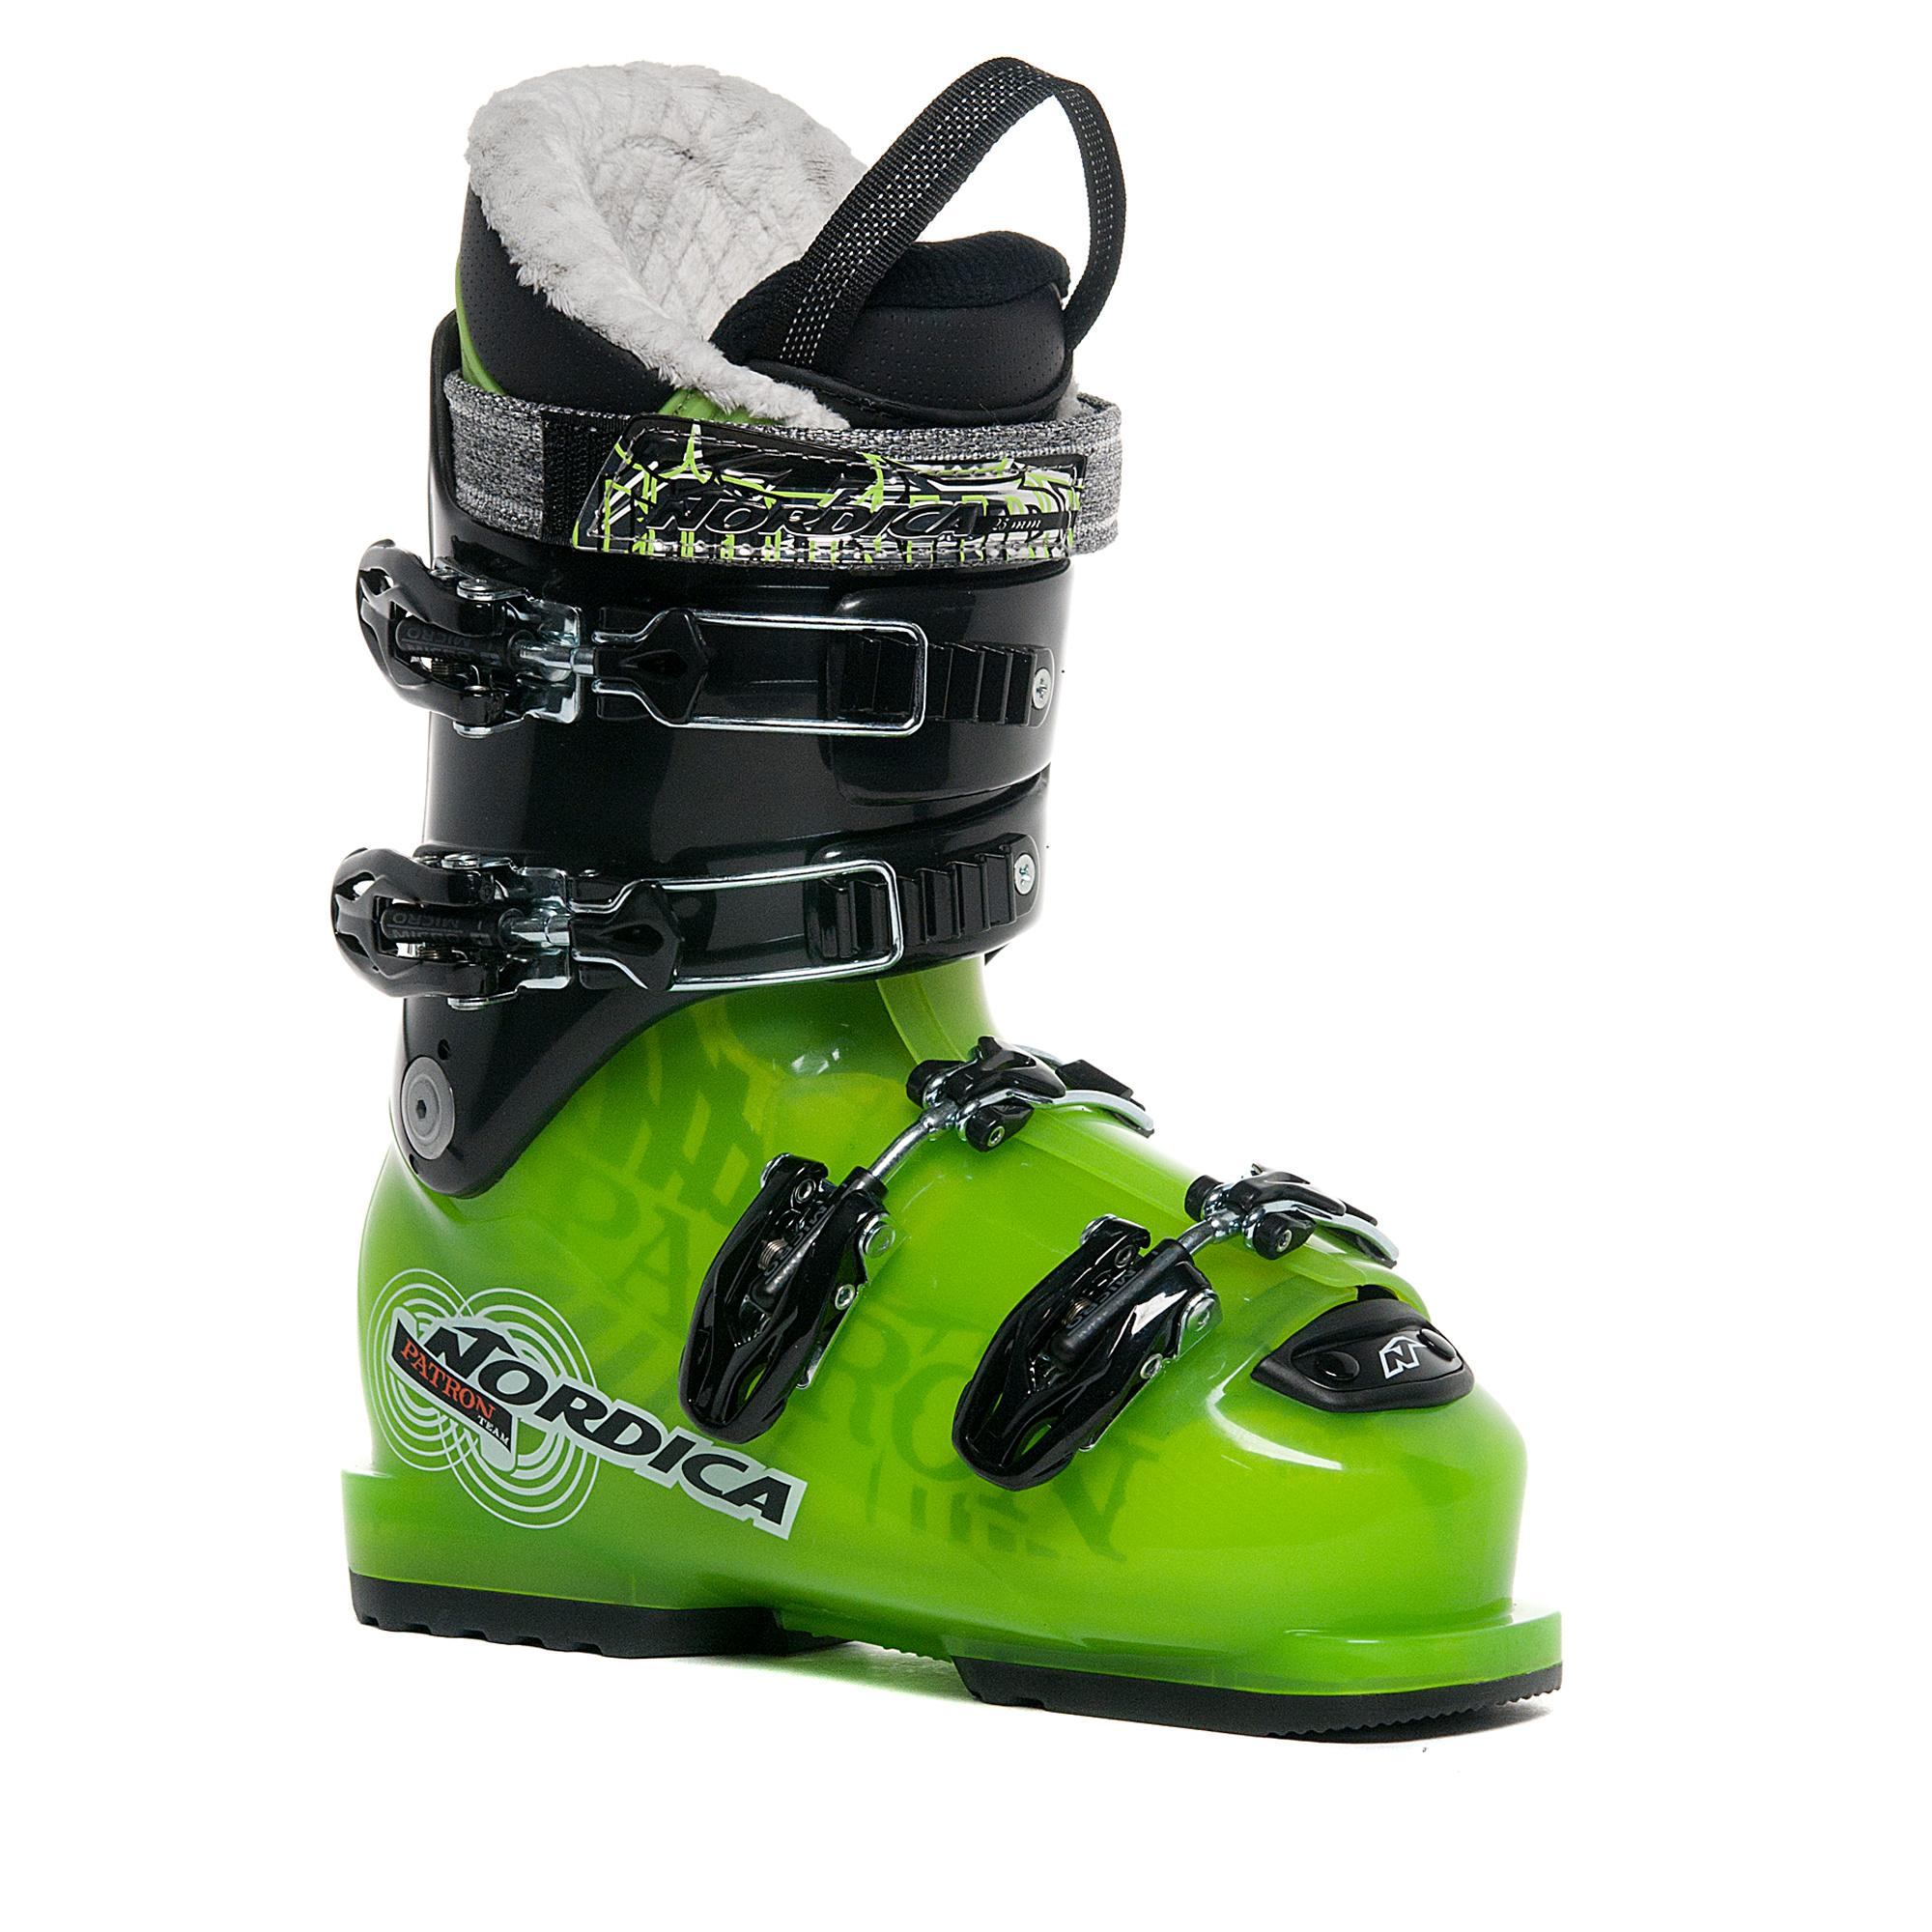 Nordica Patron Team Ski Boots, Green